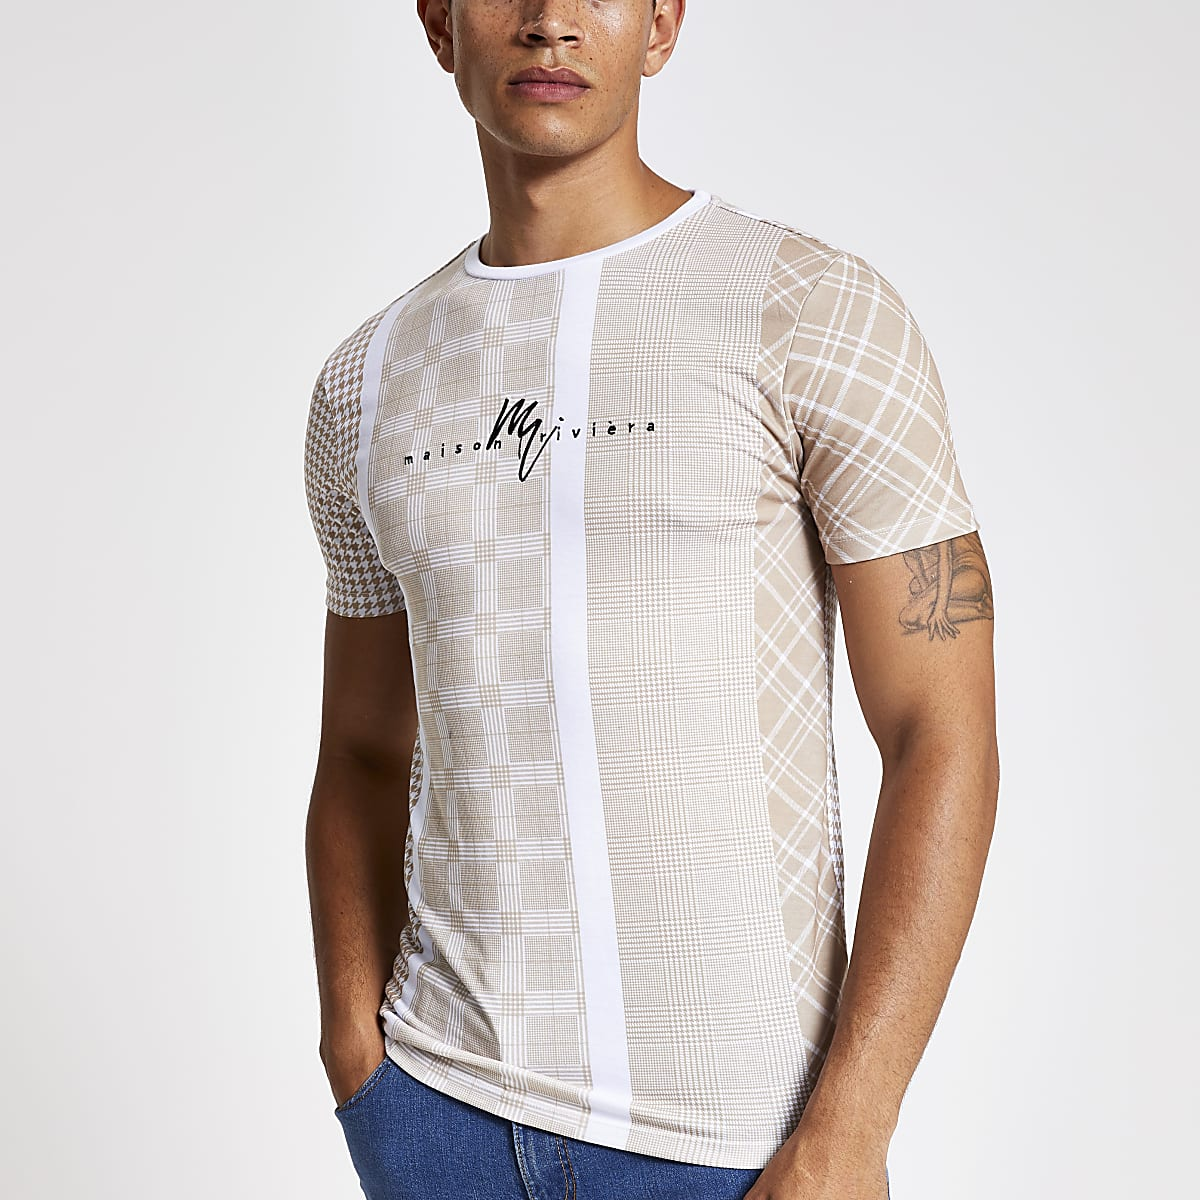 Maison Riviera brown check muscle fit T-shirt